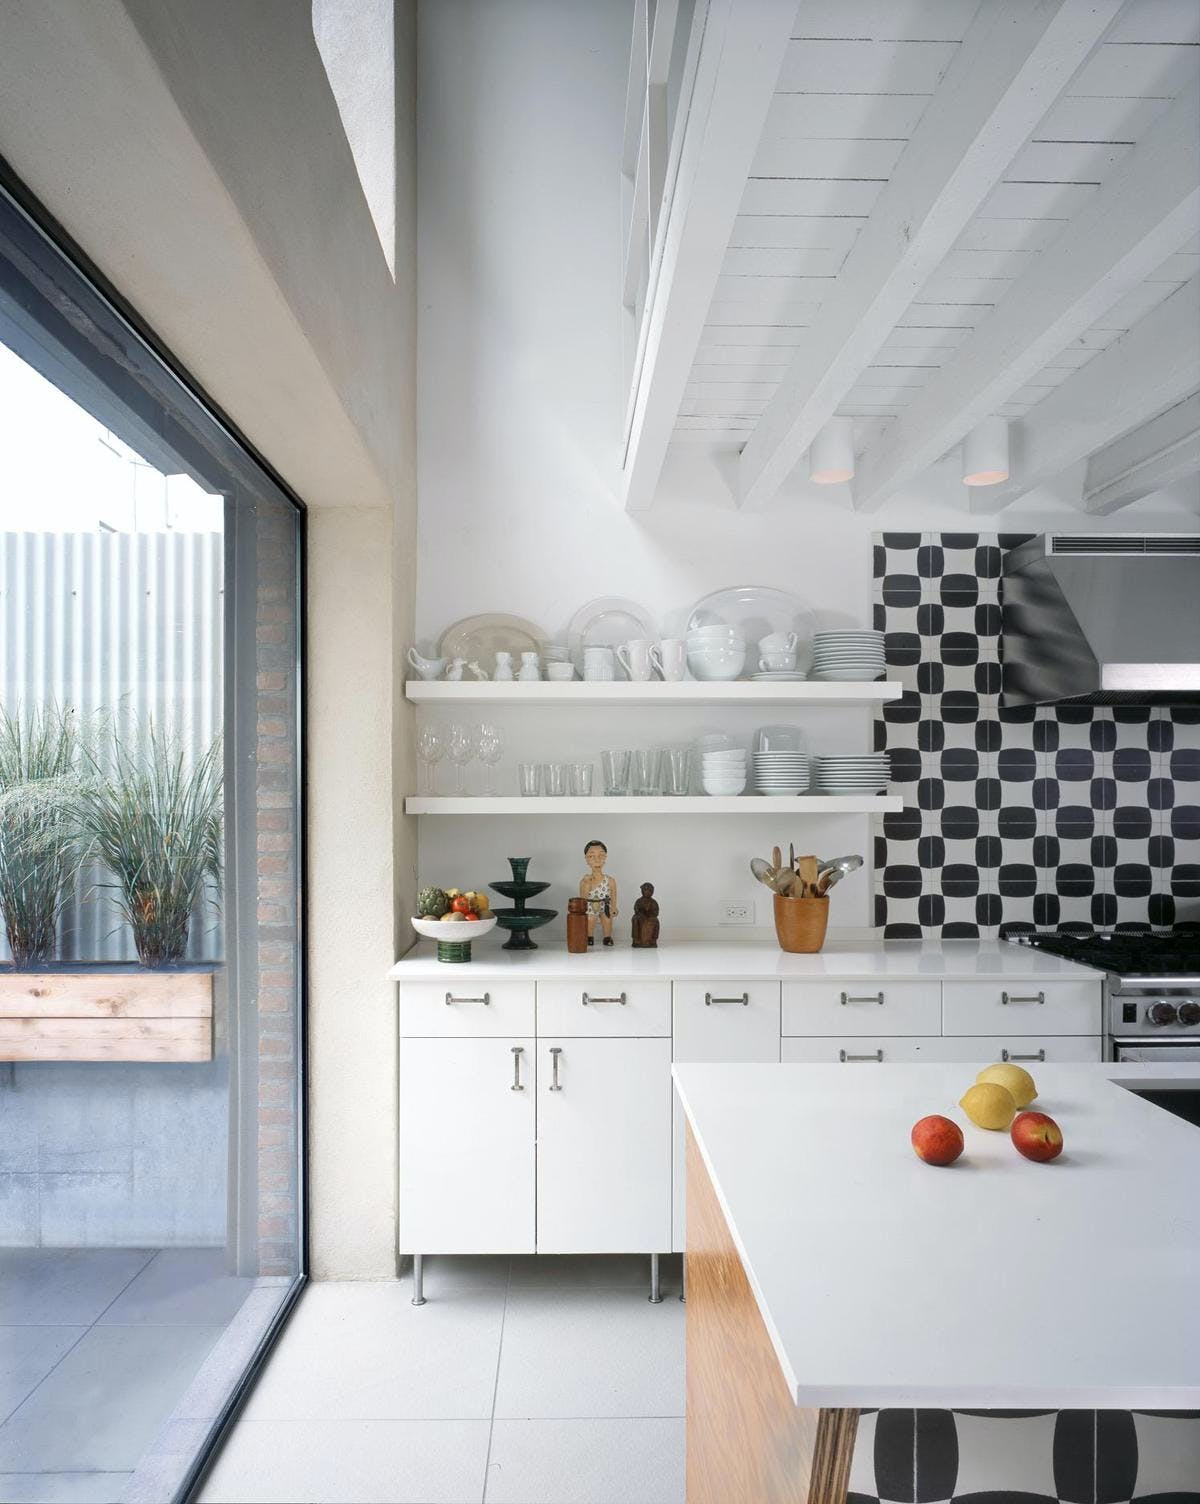 Ten Top Images On Archinect S Kitchen Spaces Pinterest Board News Archinect